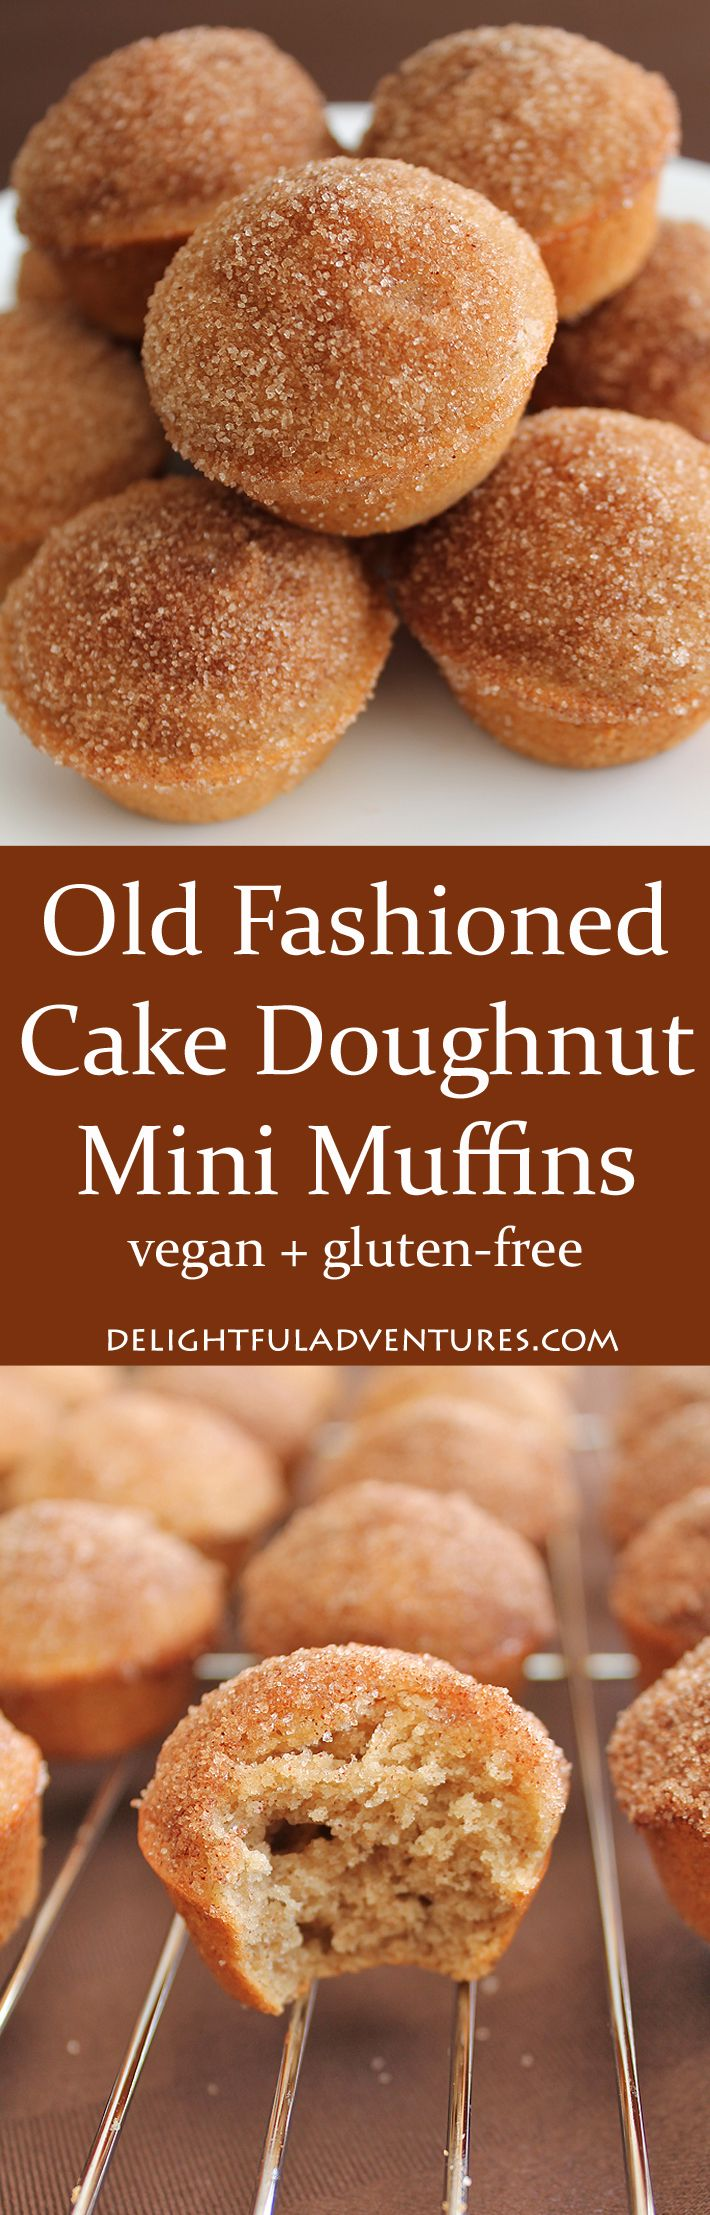 You're going to love these vegan gluten-free old fashioned cake doughnut mini muffins. They're perfectly spiced old fashioned cake doughnuts—in muffin form!